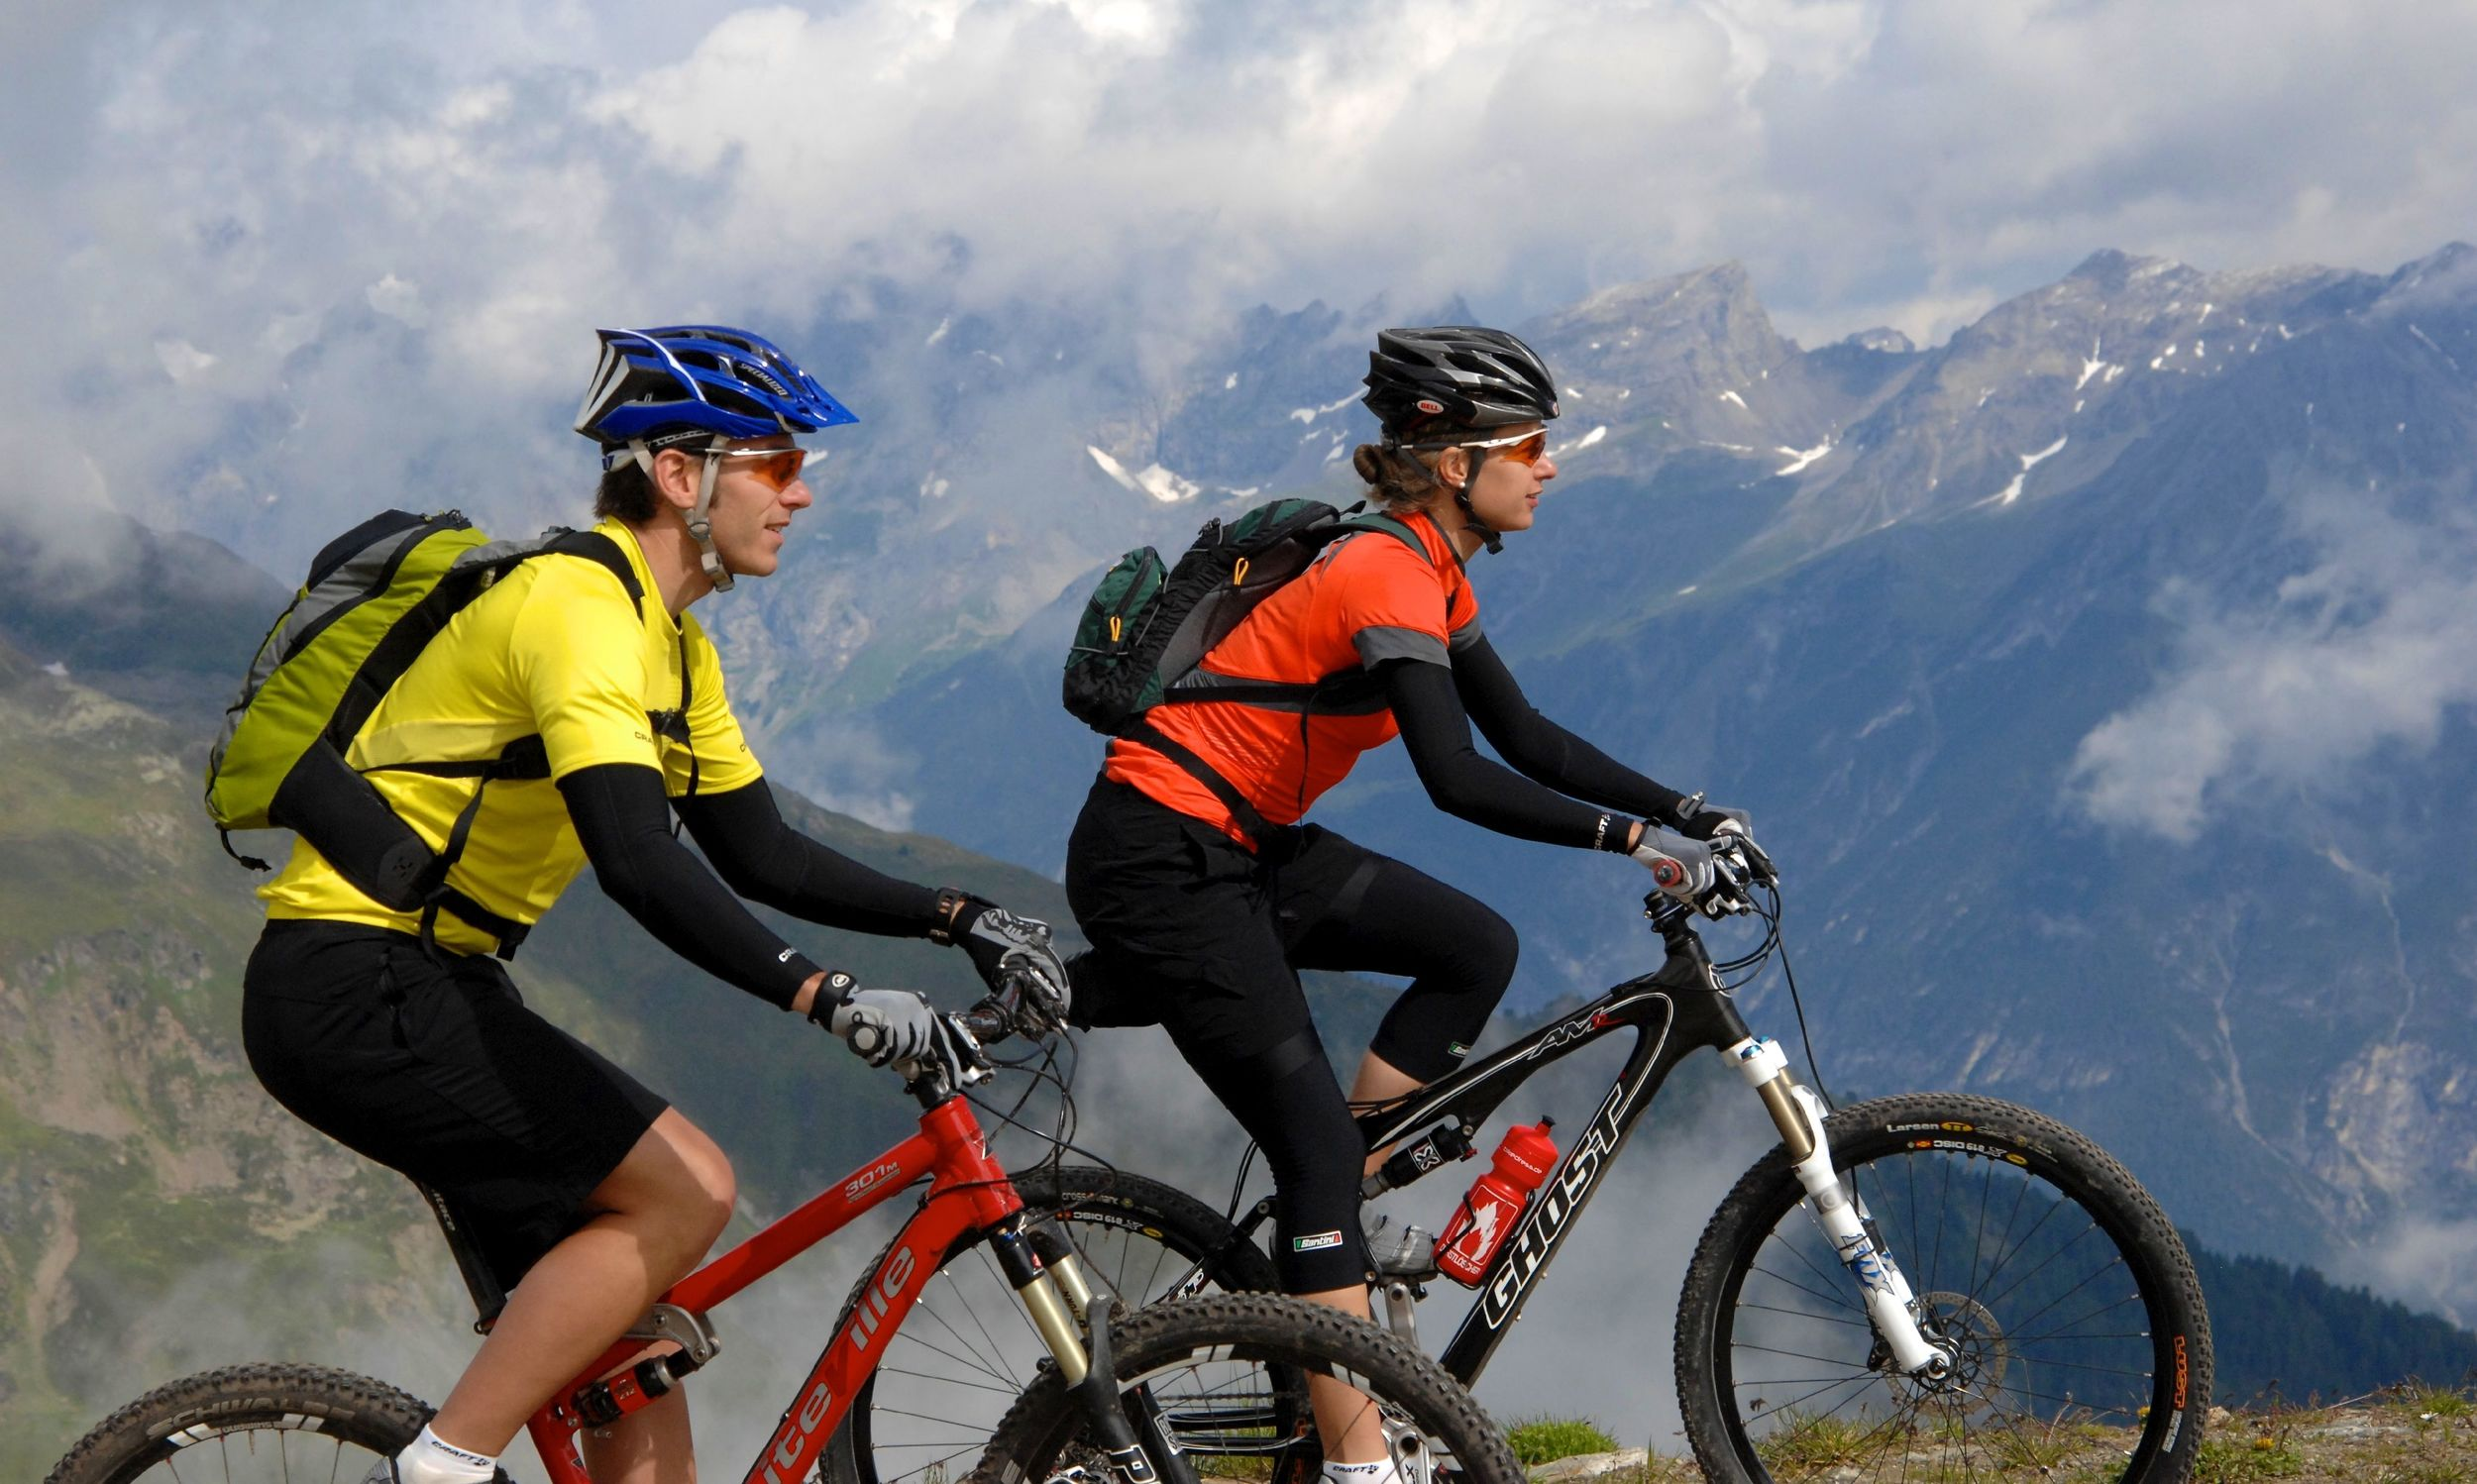 Experience our mountains on 2 wheels.